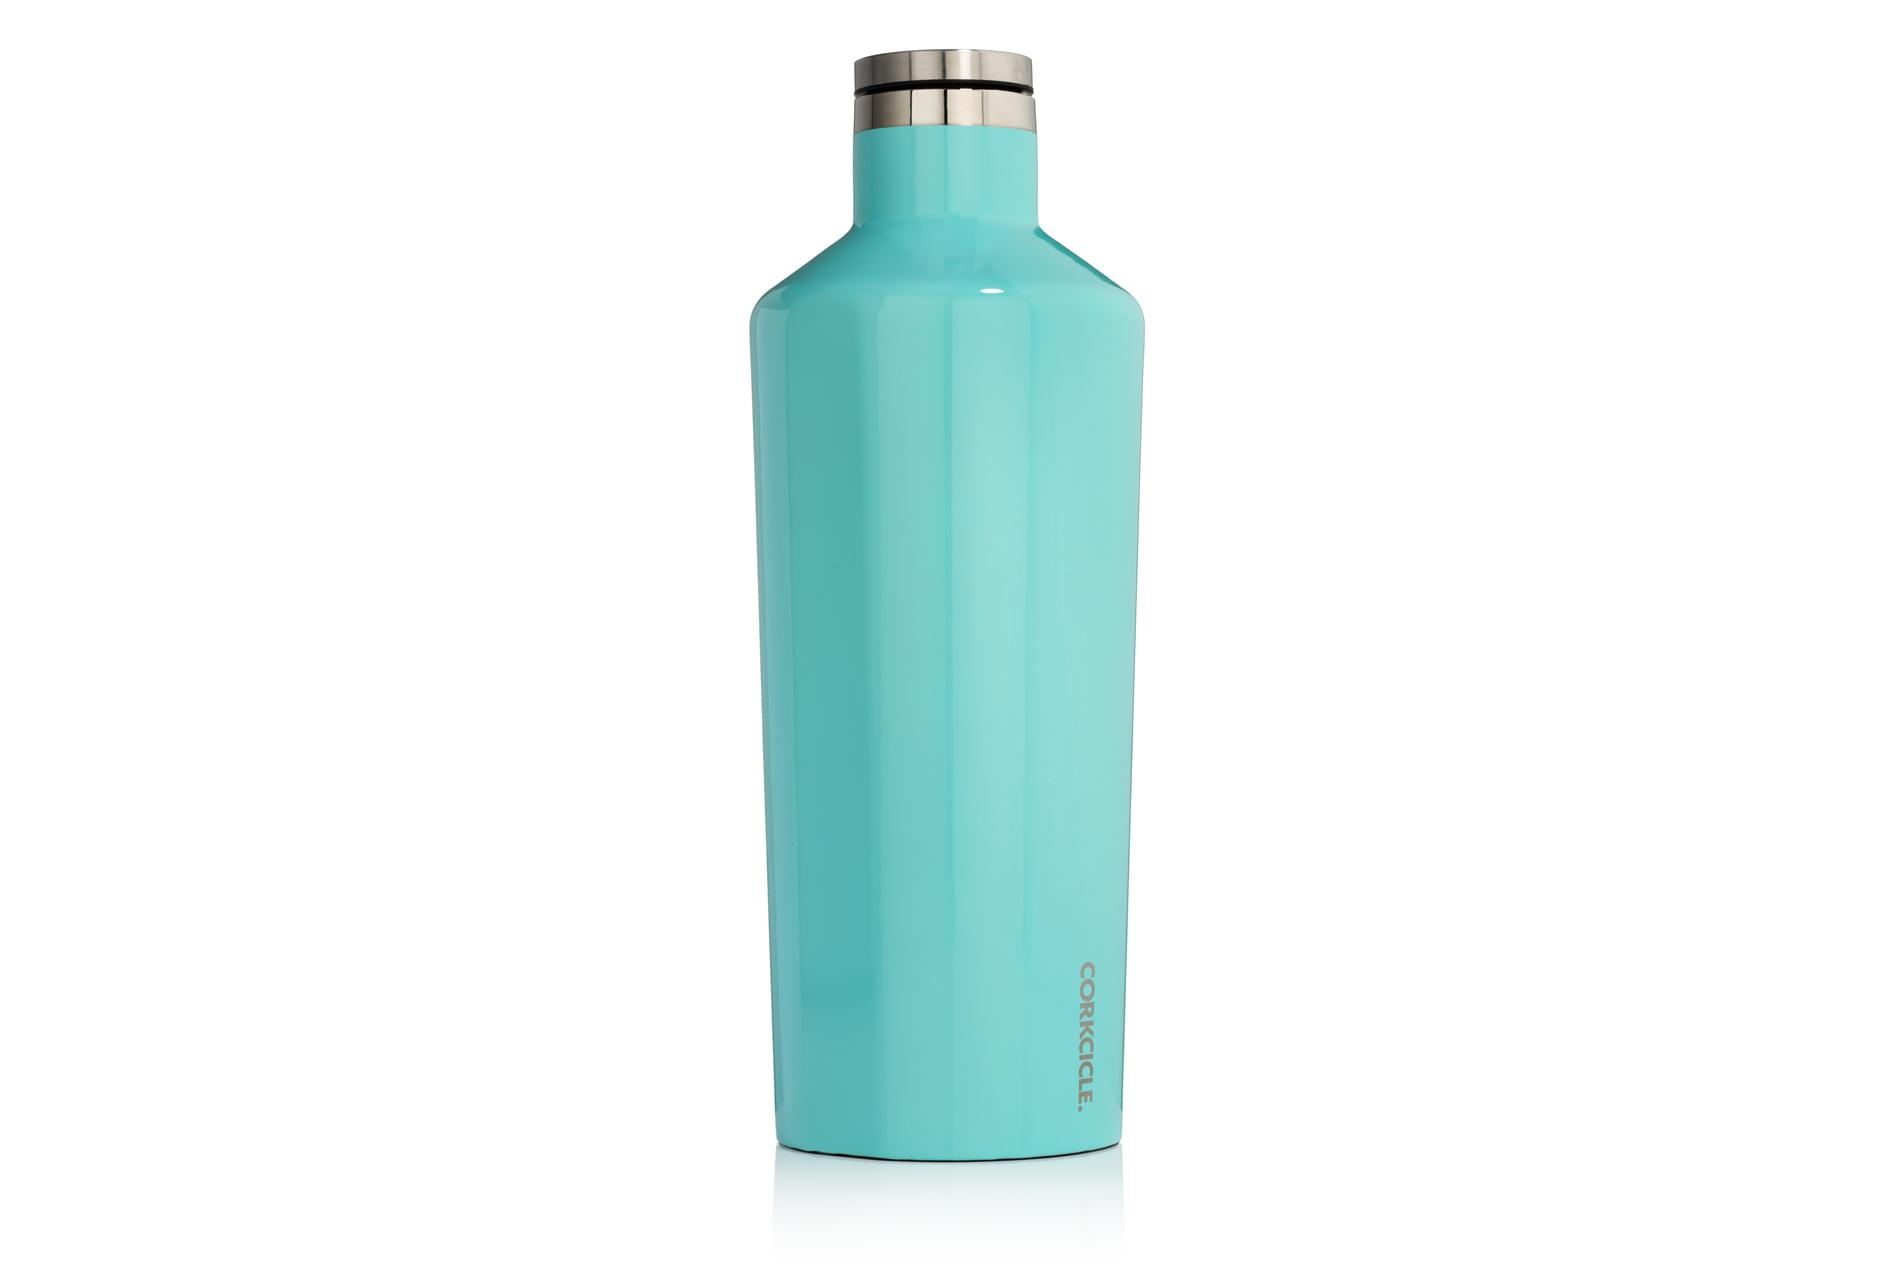 Corkcicle Trinkflasche / Thermo Isolierflasche Gloss Turquoise 1775 ml Classic